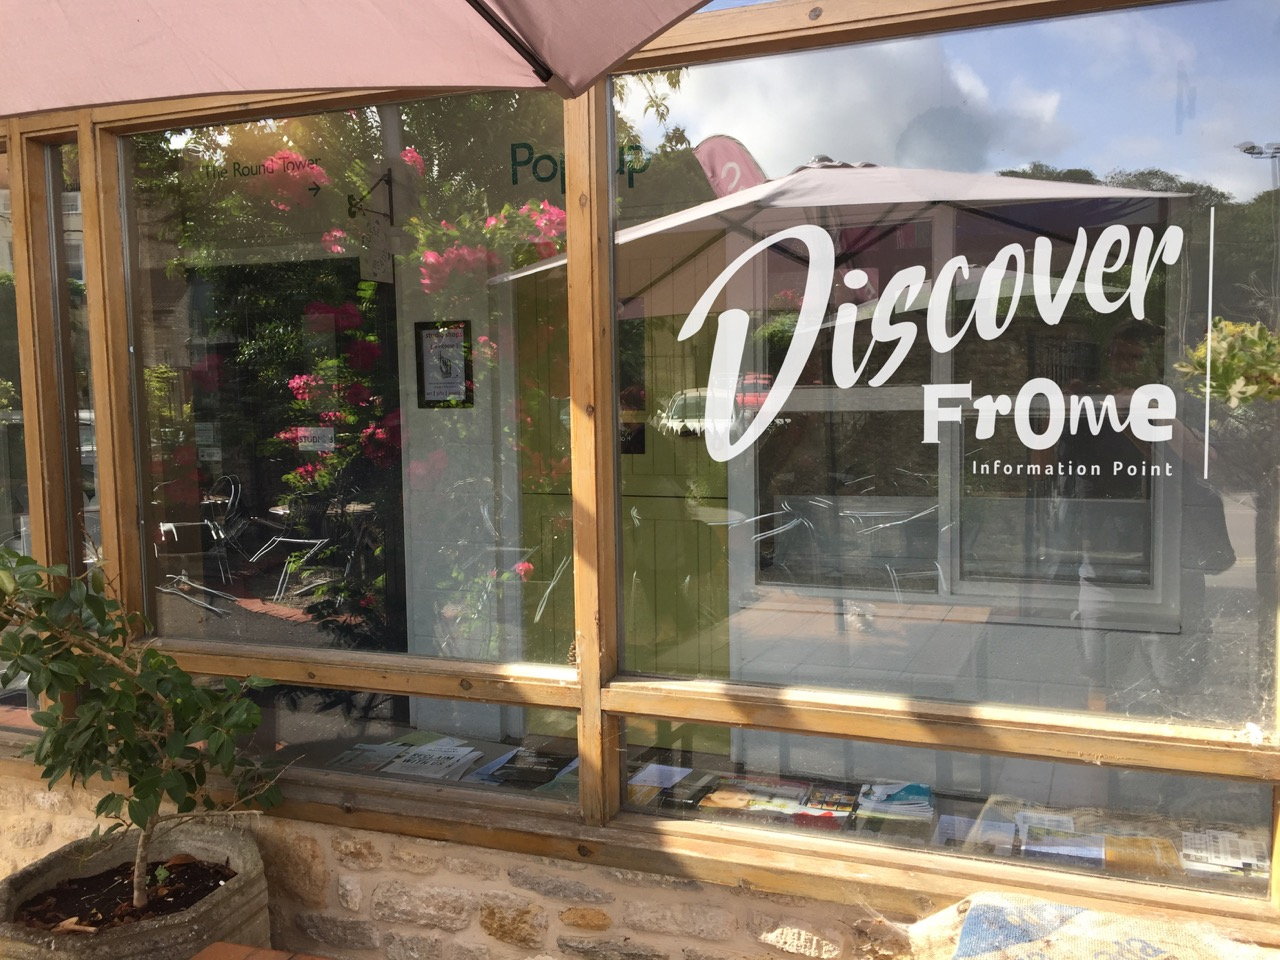 The Discover Frome Information Point provides local knowledge and tourist information for visitors and residents alike